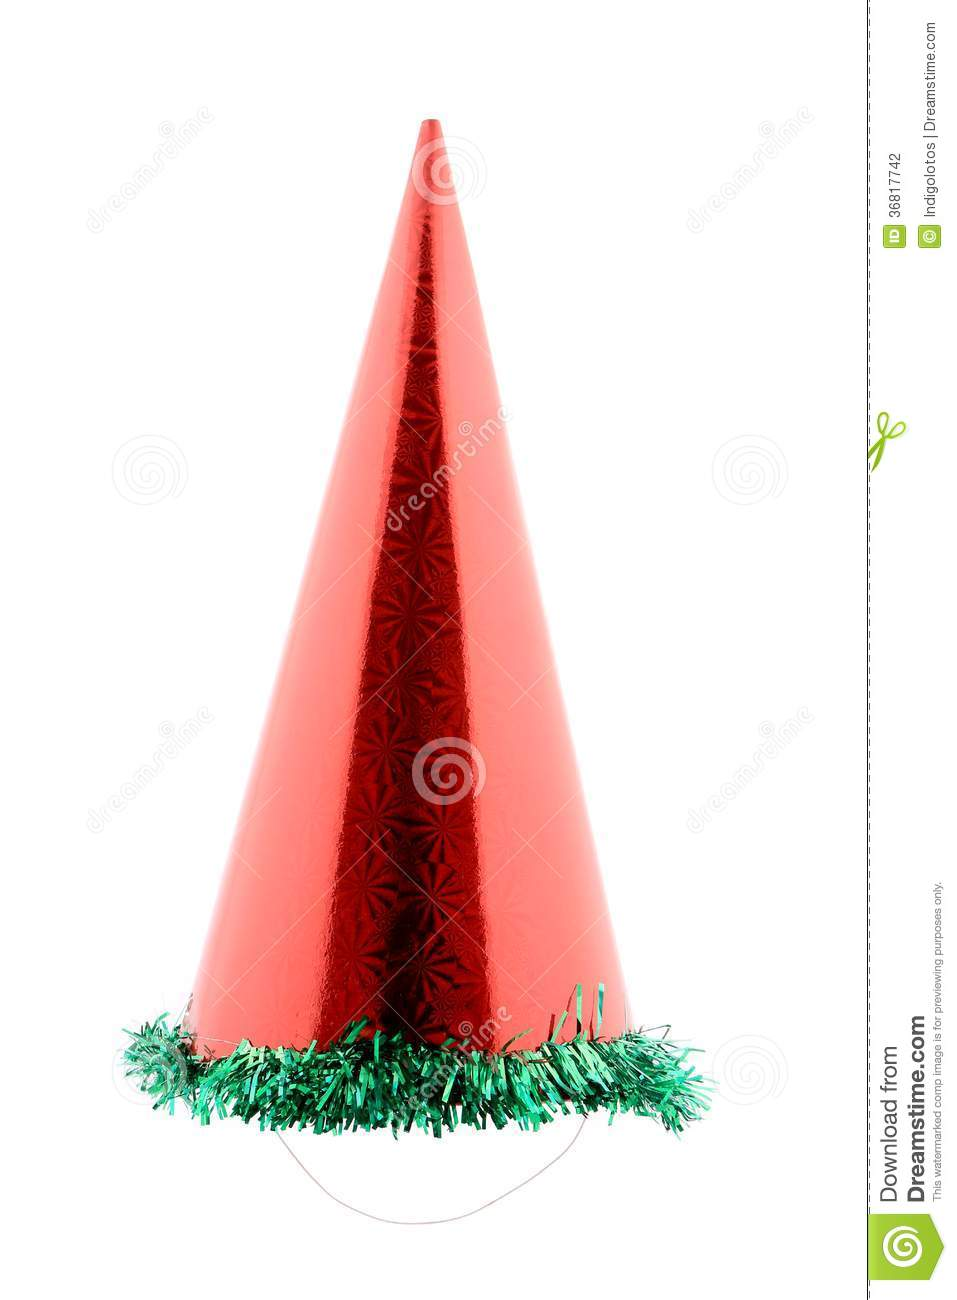 Red party hat cone.